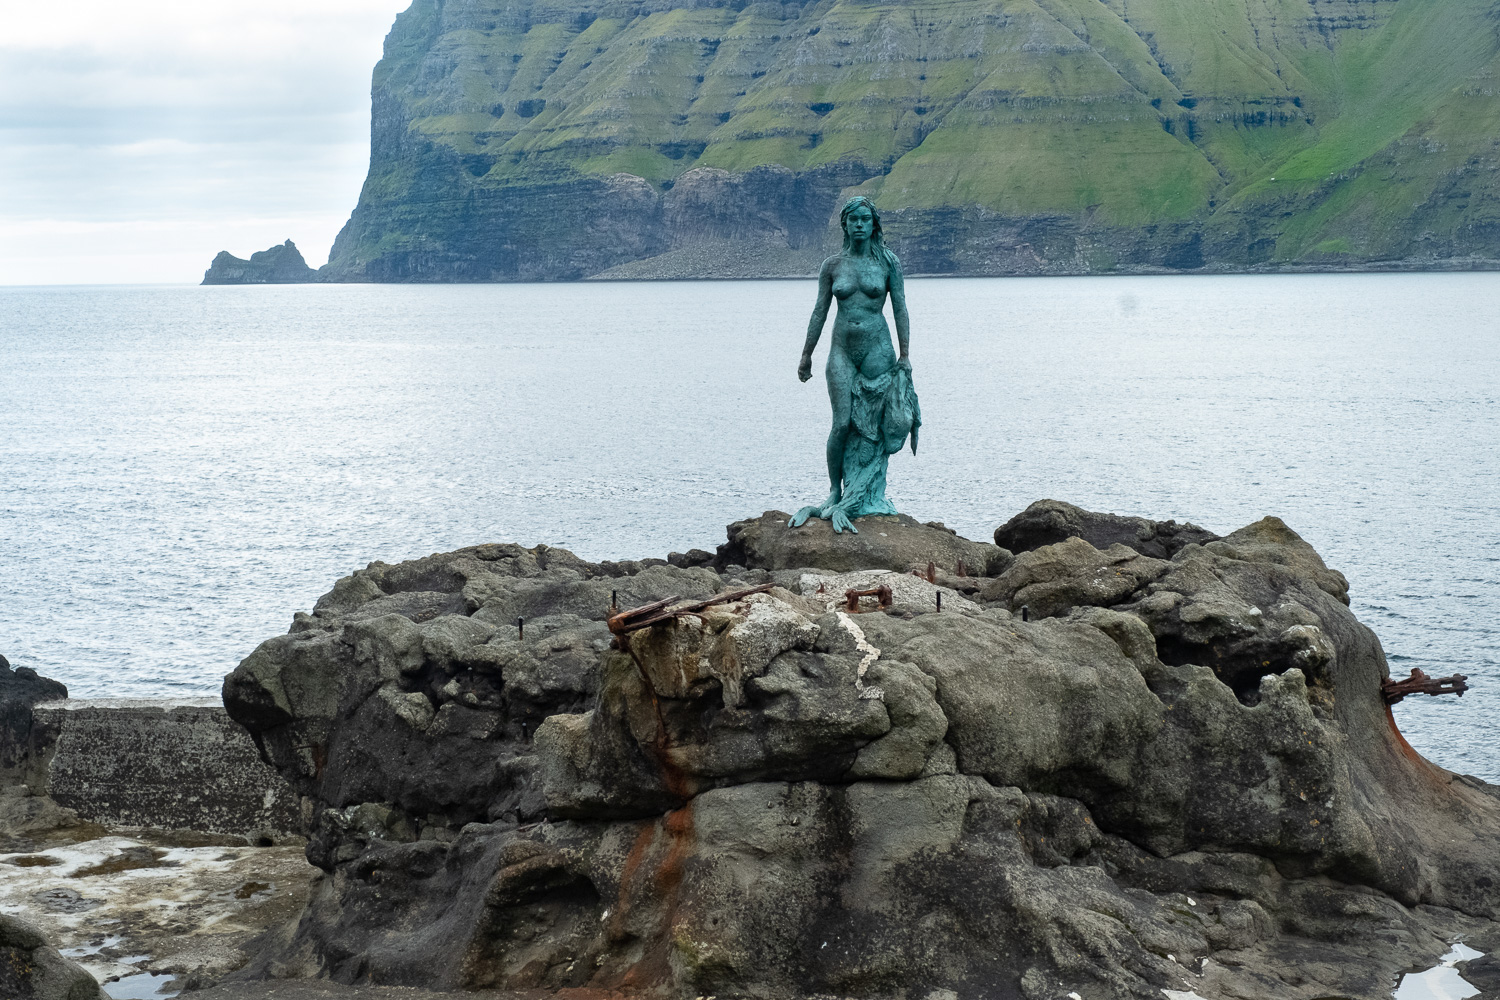 A statue to a Selkie, a creature who was a woman by night and seal by day who cursed the small town where we hiked, for hunting and killing her seal family.